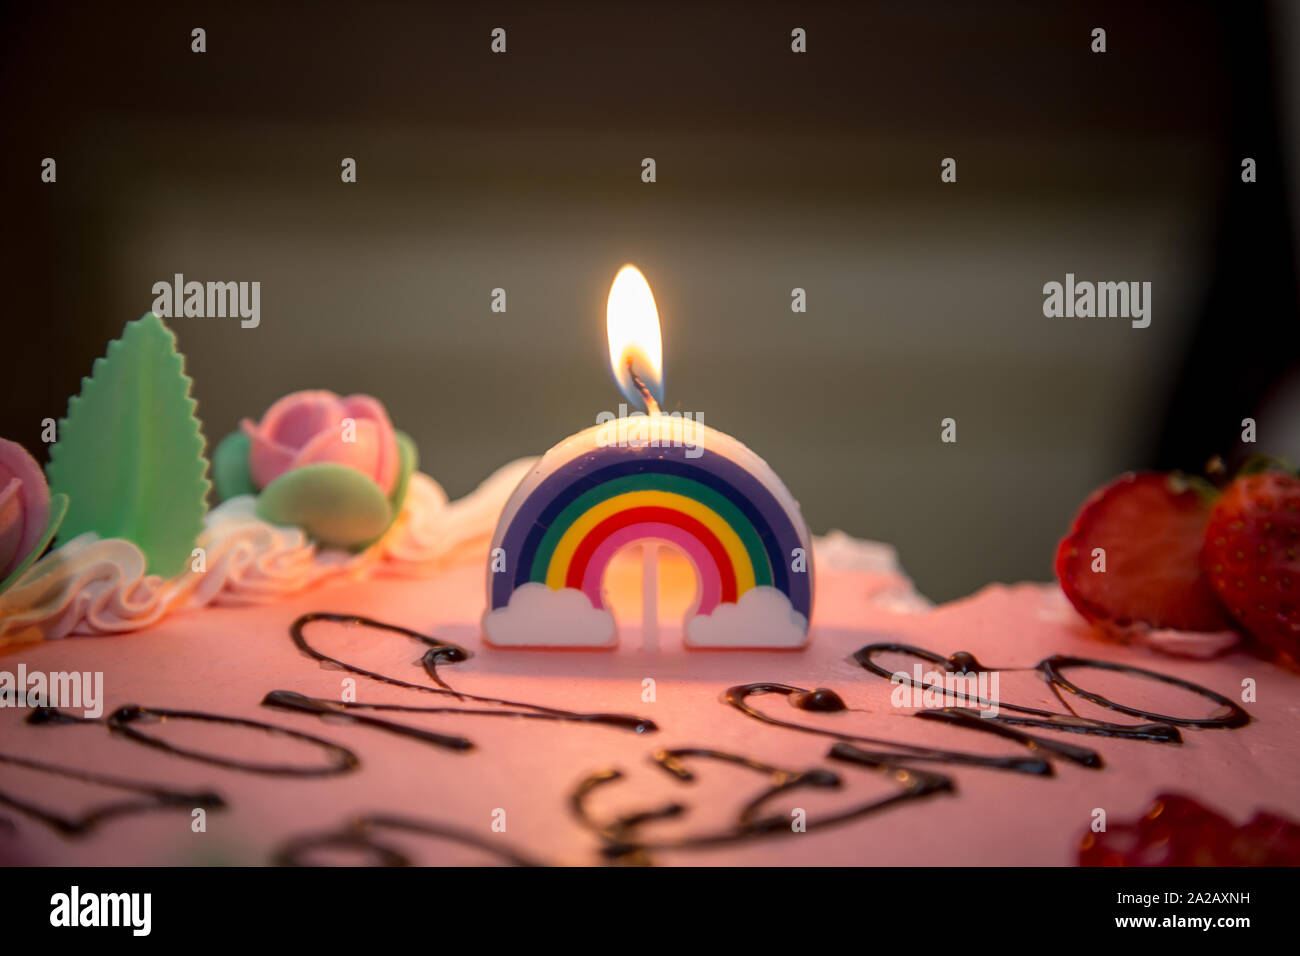 Superb Rainbow Candle On The First Birthday Cake Girl Stock Photo Personalised Birthday Cards Cominlily Jamesorg